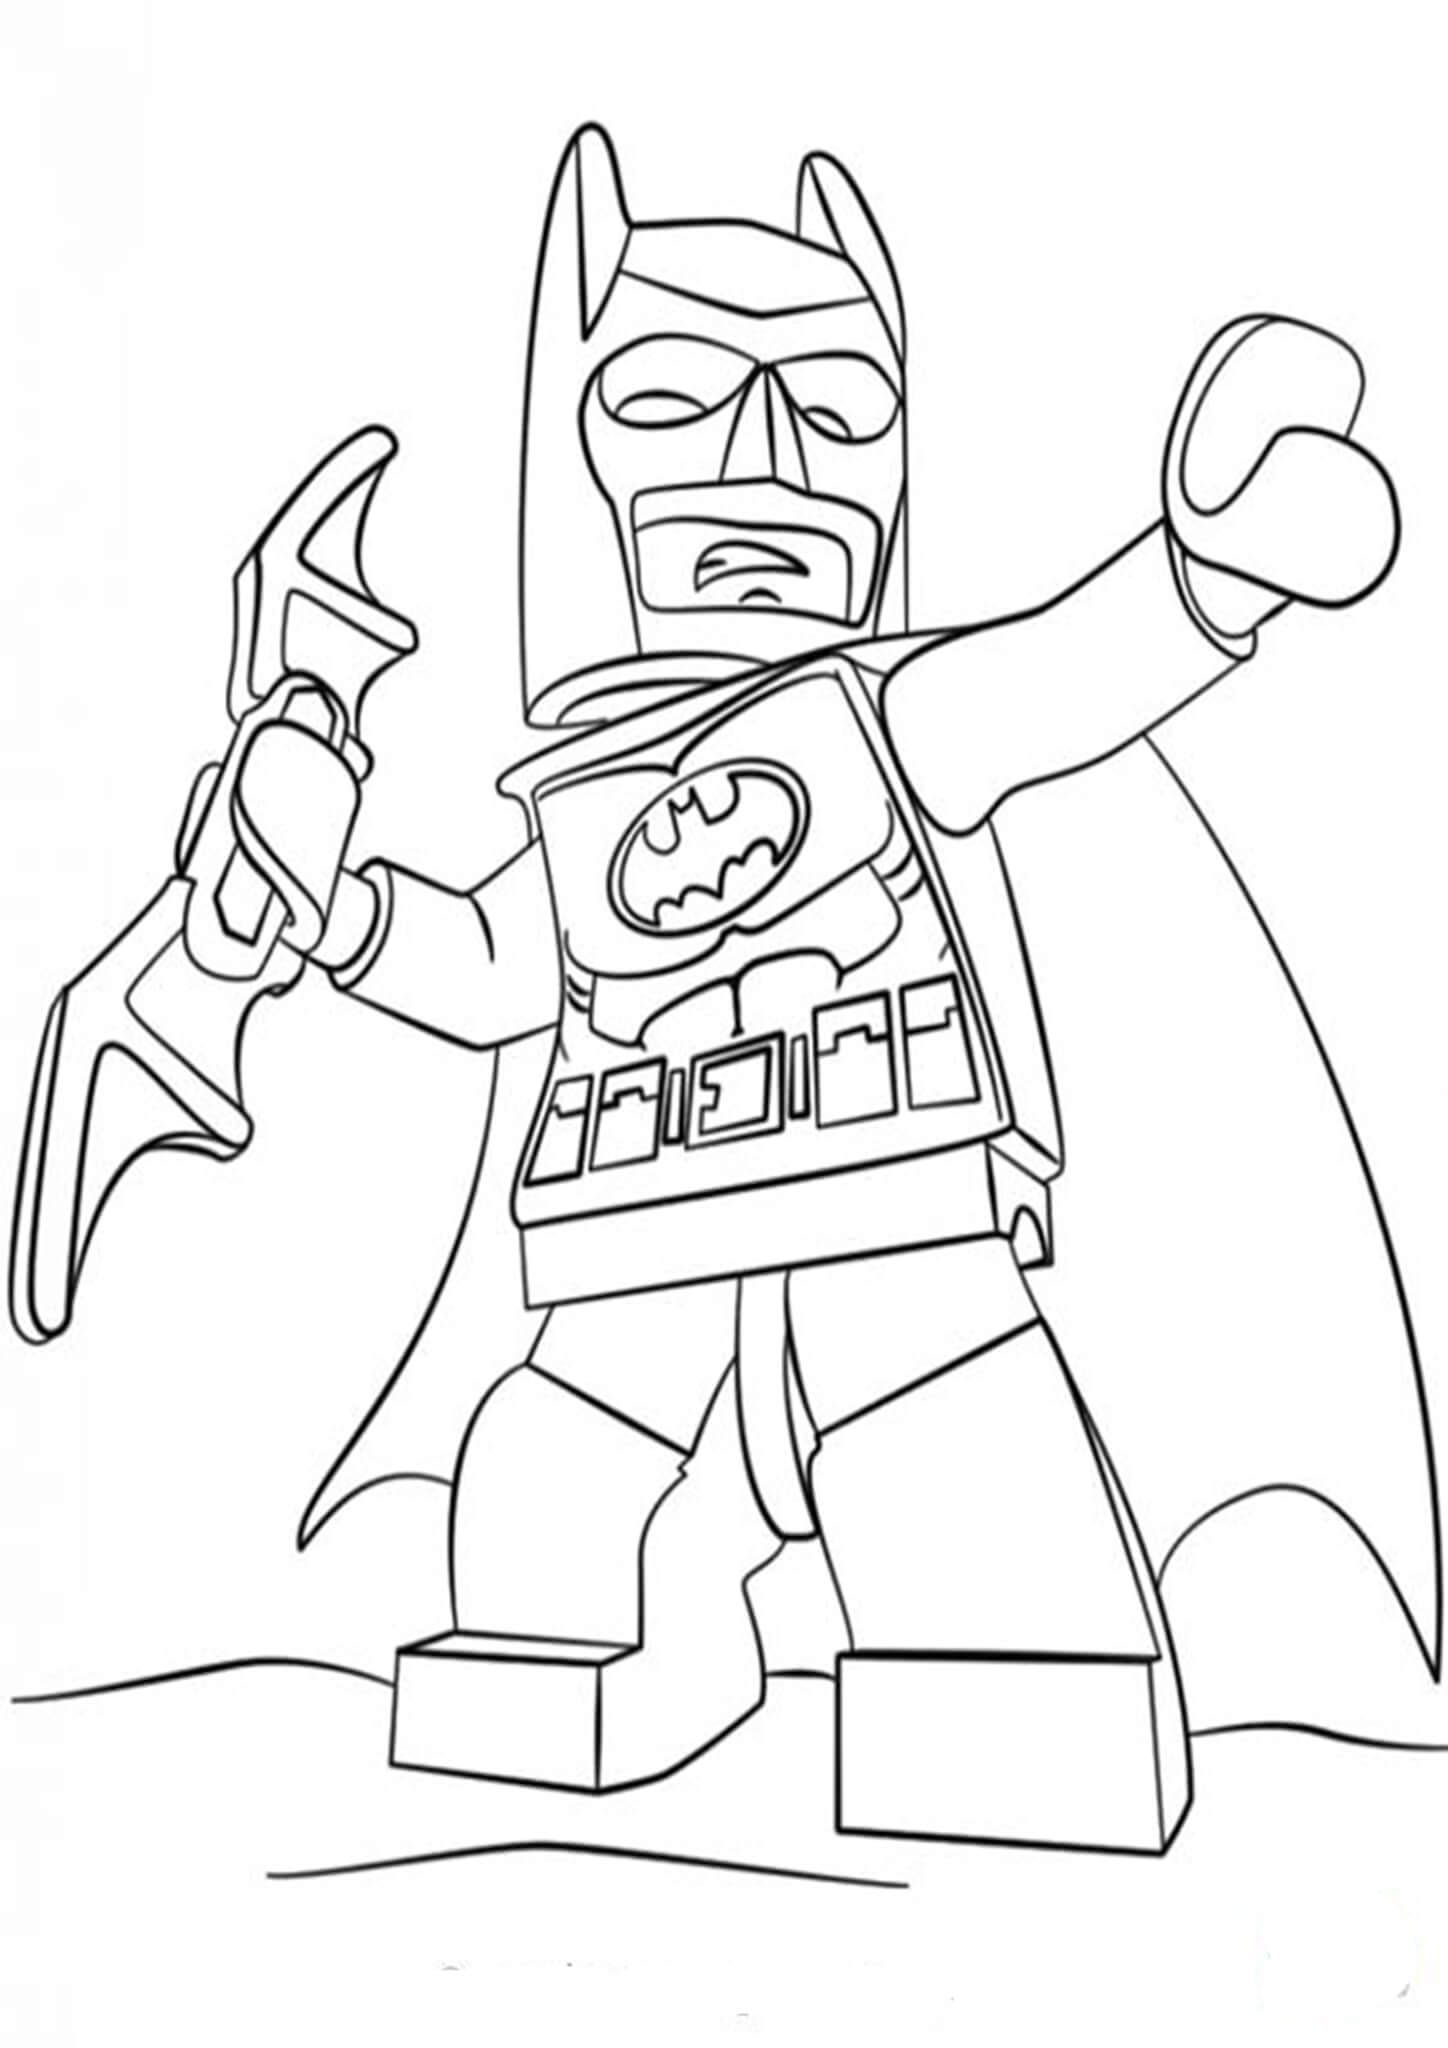 Lego Batman Coloring Pages Best Coloring Pages For Kids Superhero Coloring Pages Lego Movie Coloring Pages Superhero Coloring